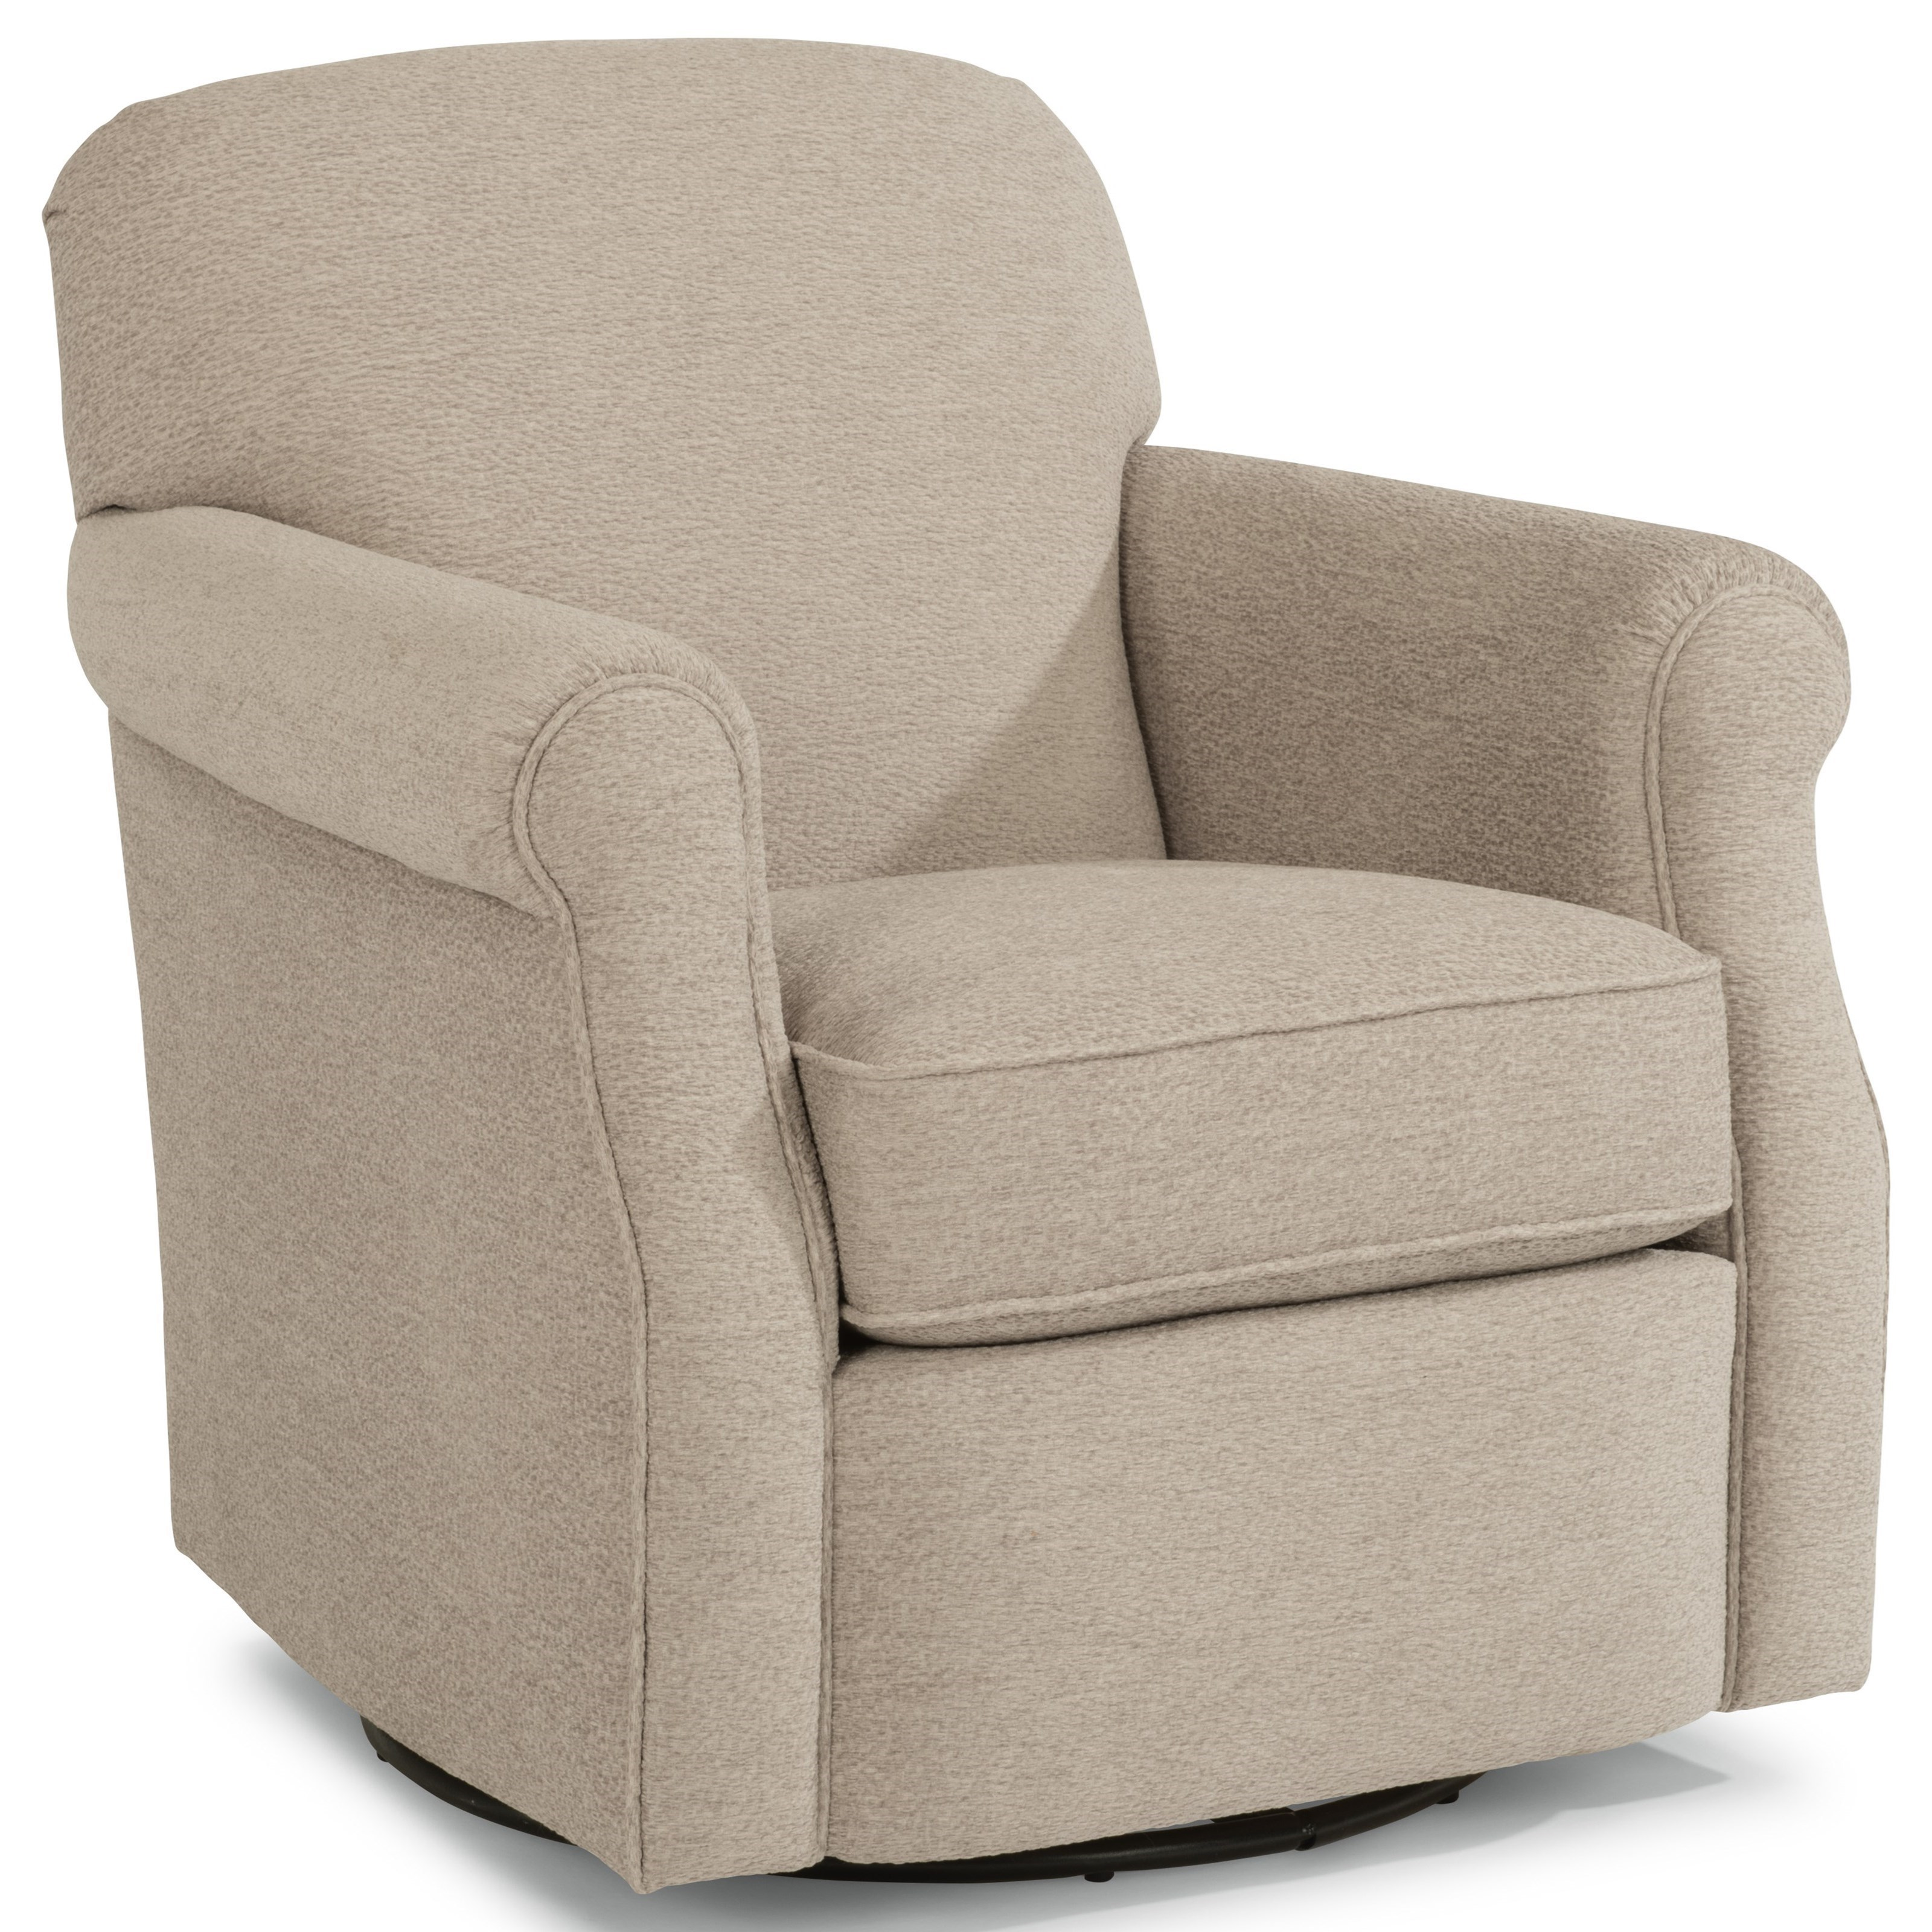 Flexsteel MabelSwivel Chair